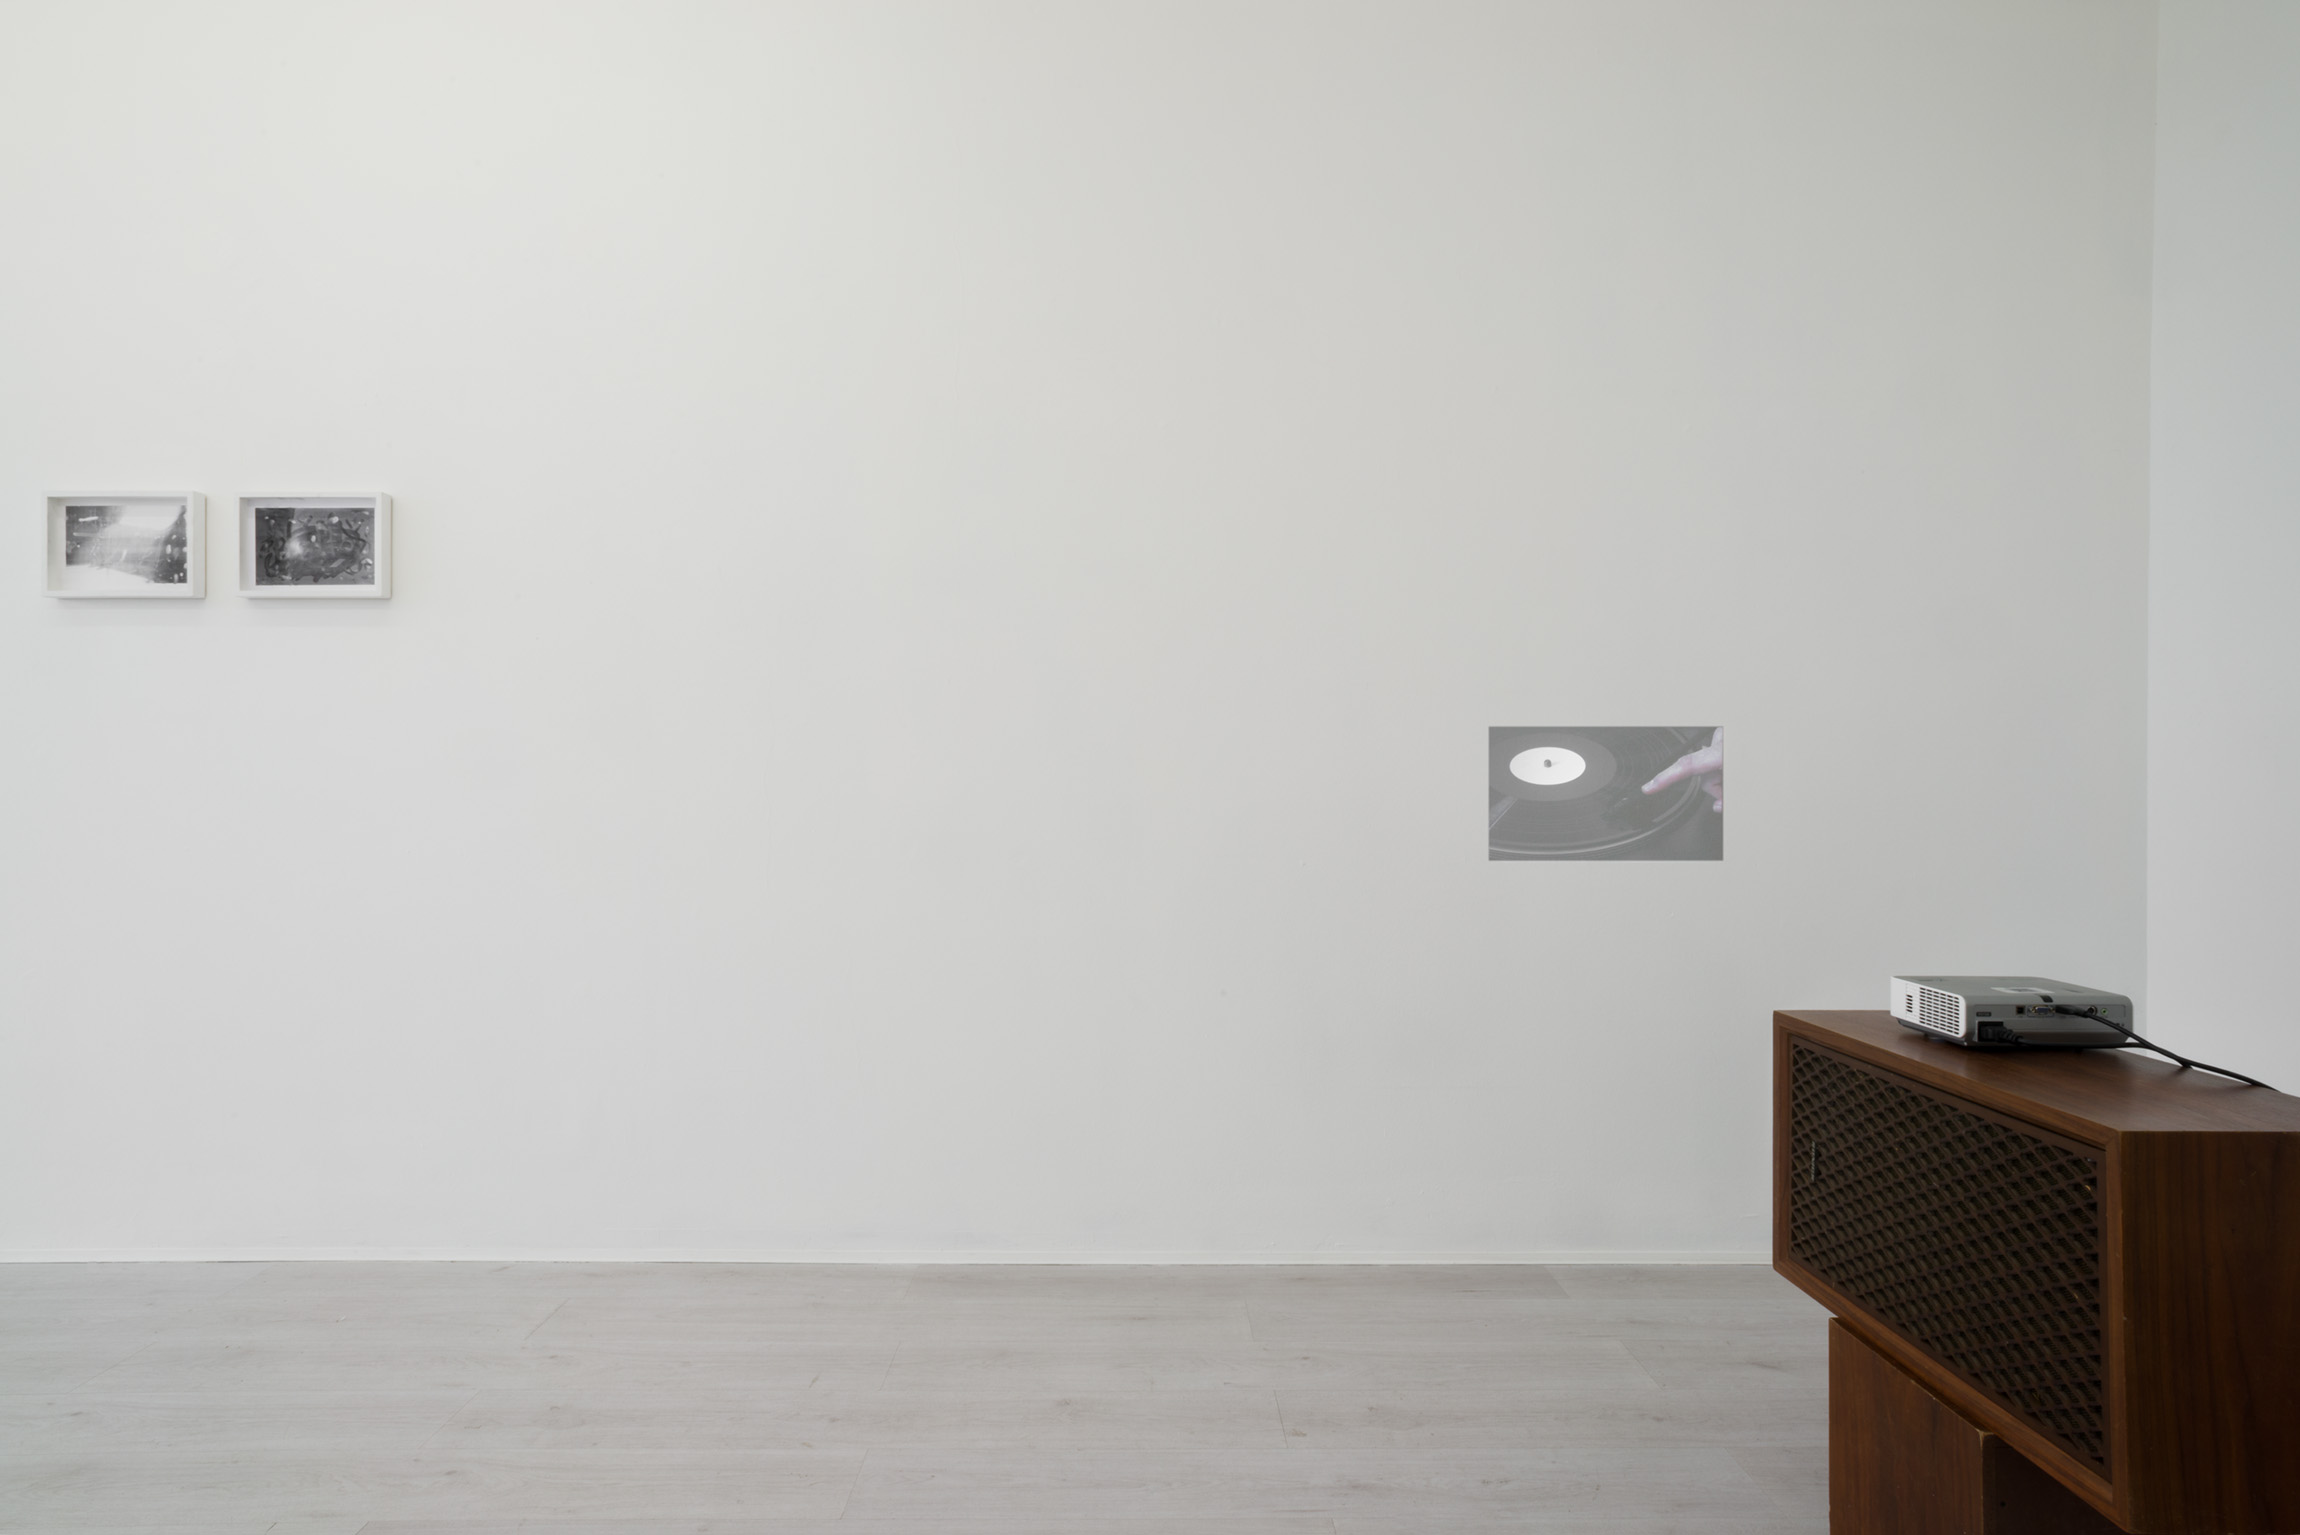 2. Gianluca Codeghini -Solo Noise- exhibition view at A+B gallery Brescia